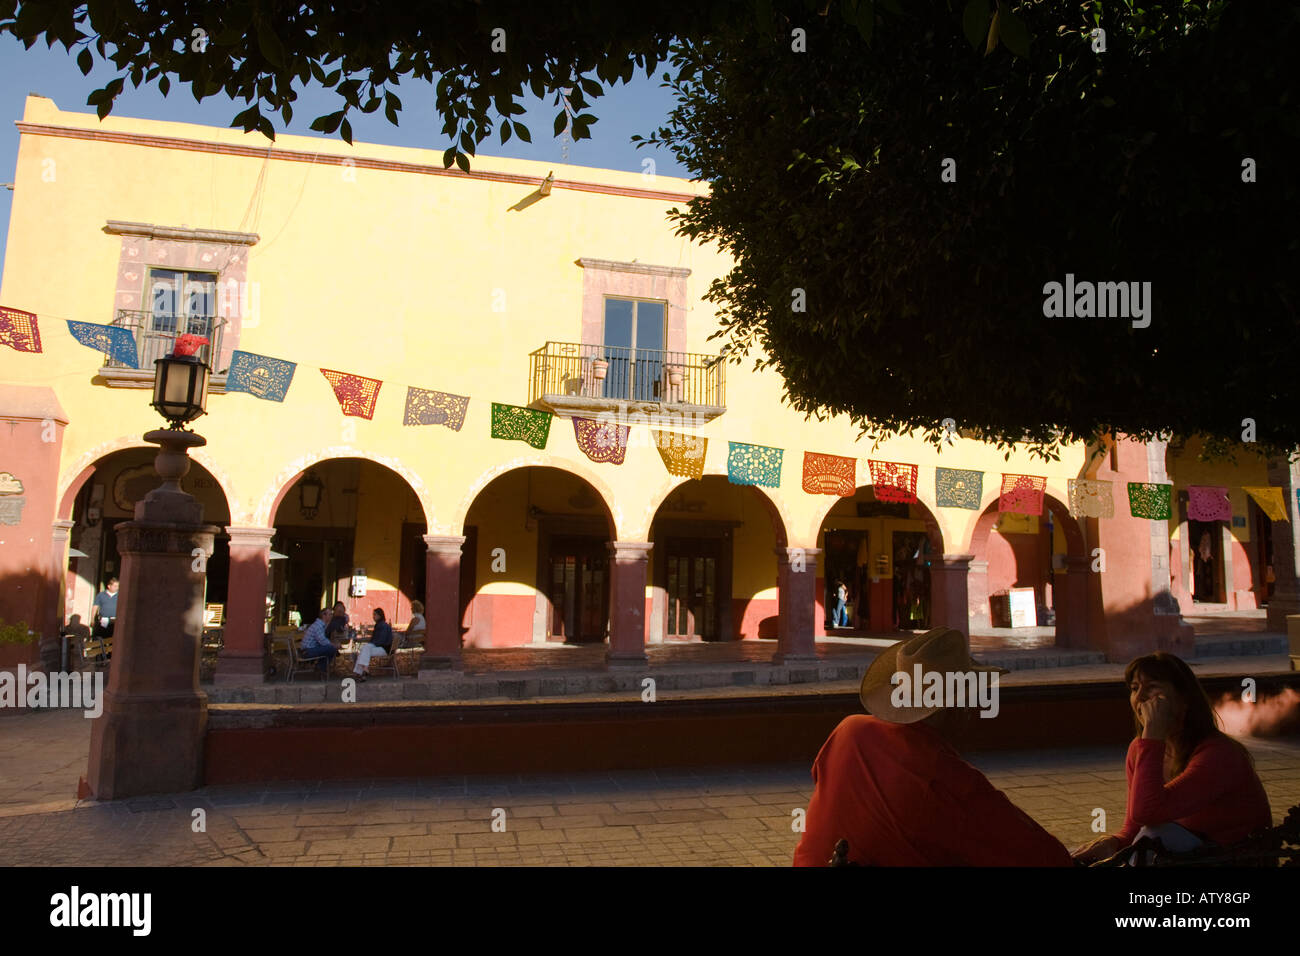 MEXICO San Miguel de Allende Cut out paper flags decorate plaza around El Jardin couple sitting on bench talking - Stock Image